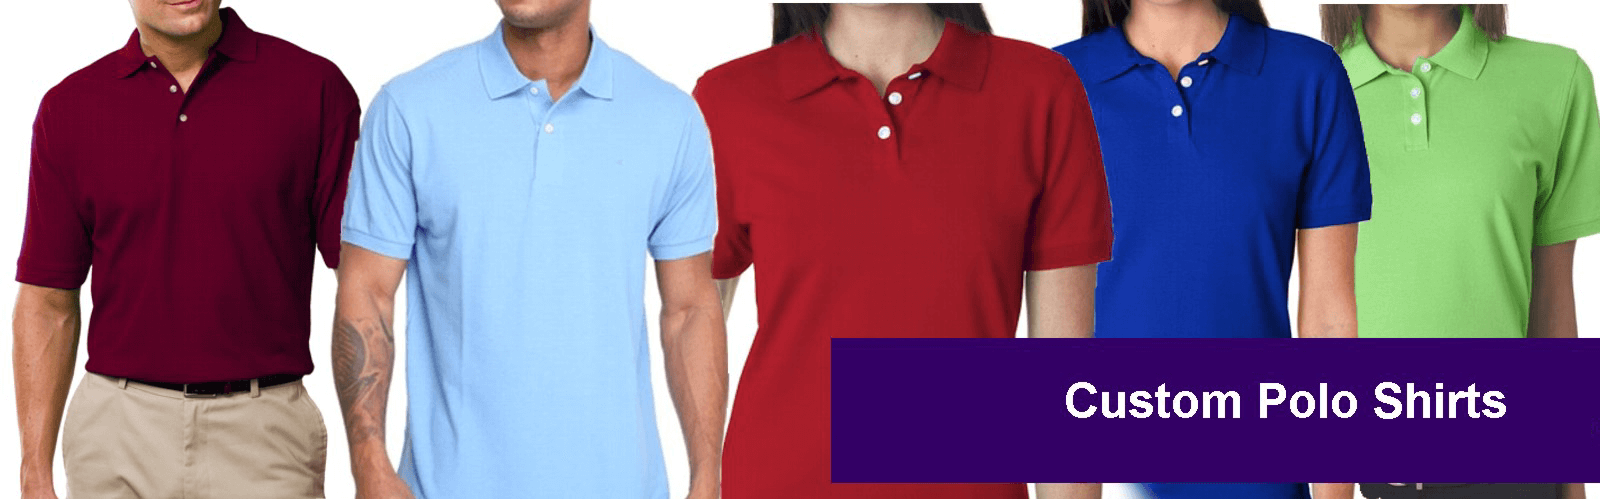 Polo T Shirts Personalised: Customised Branded T Shirts Online - T Shirts Printing Online